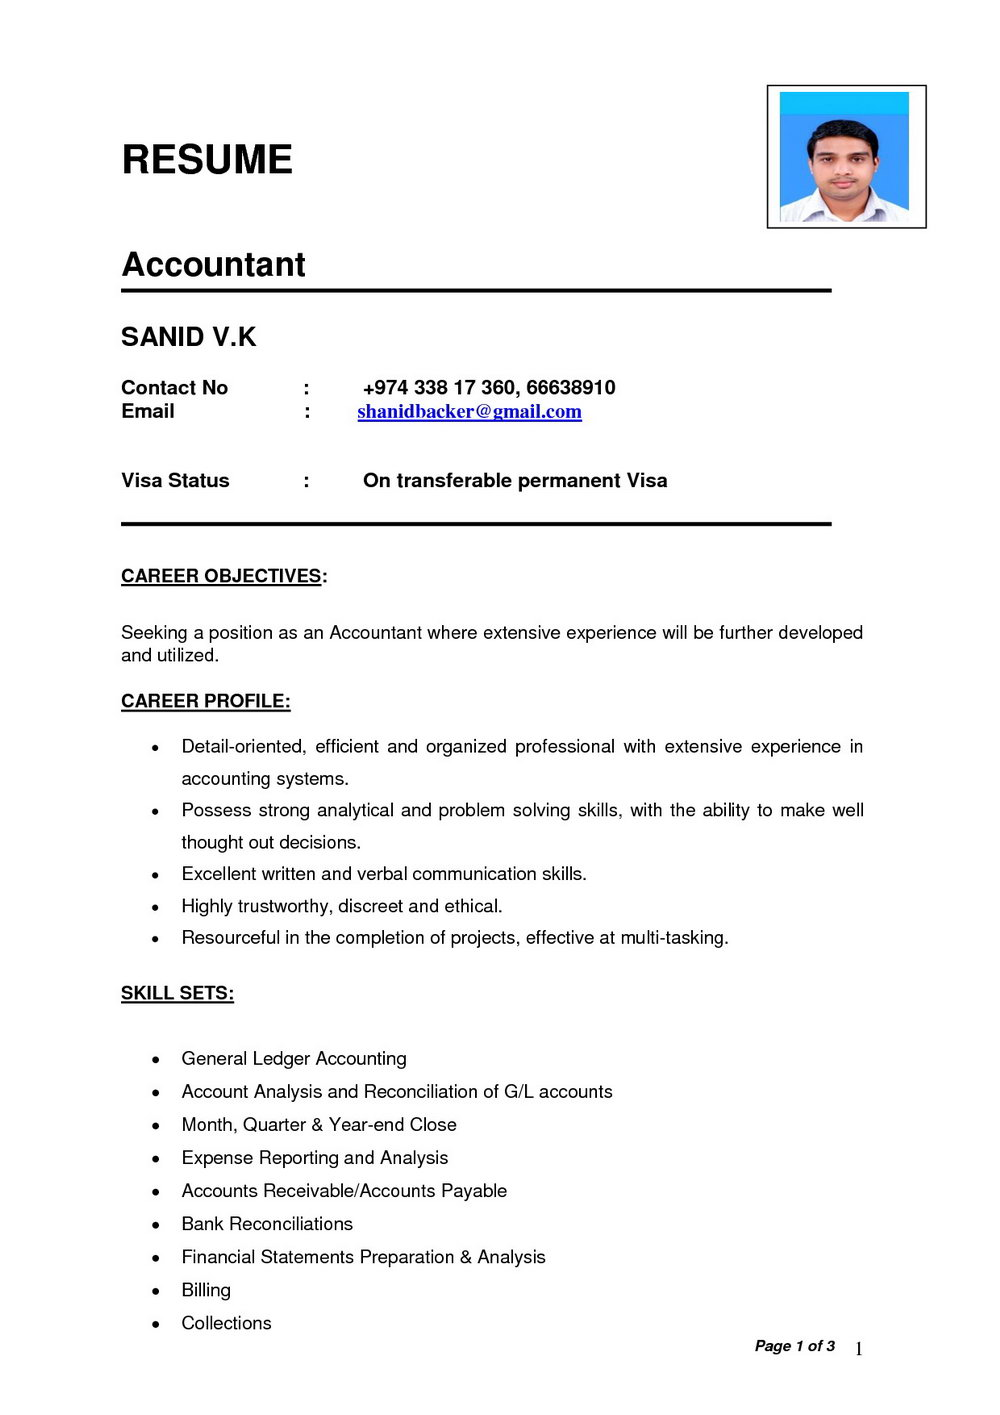 Resume Format For Dentist Job In India